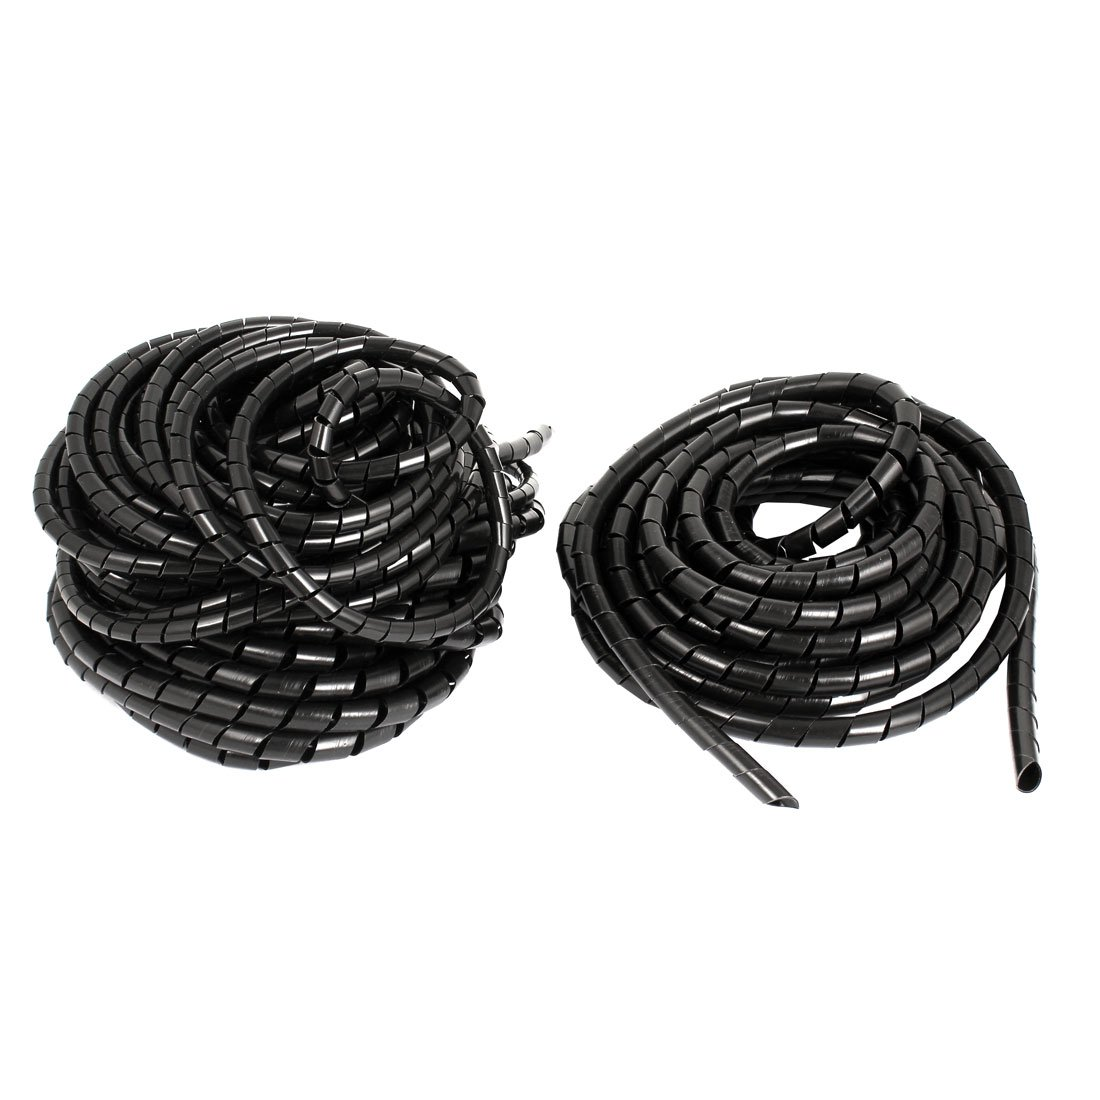 PC Cinema TV Cable Wire Tidy Wrap Spiral Wrapping Band 8mm 37Ft 3pcs